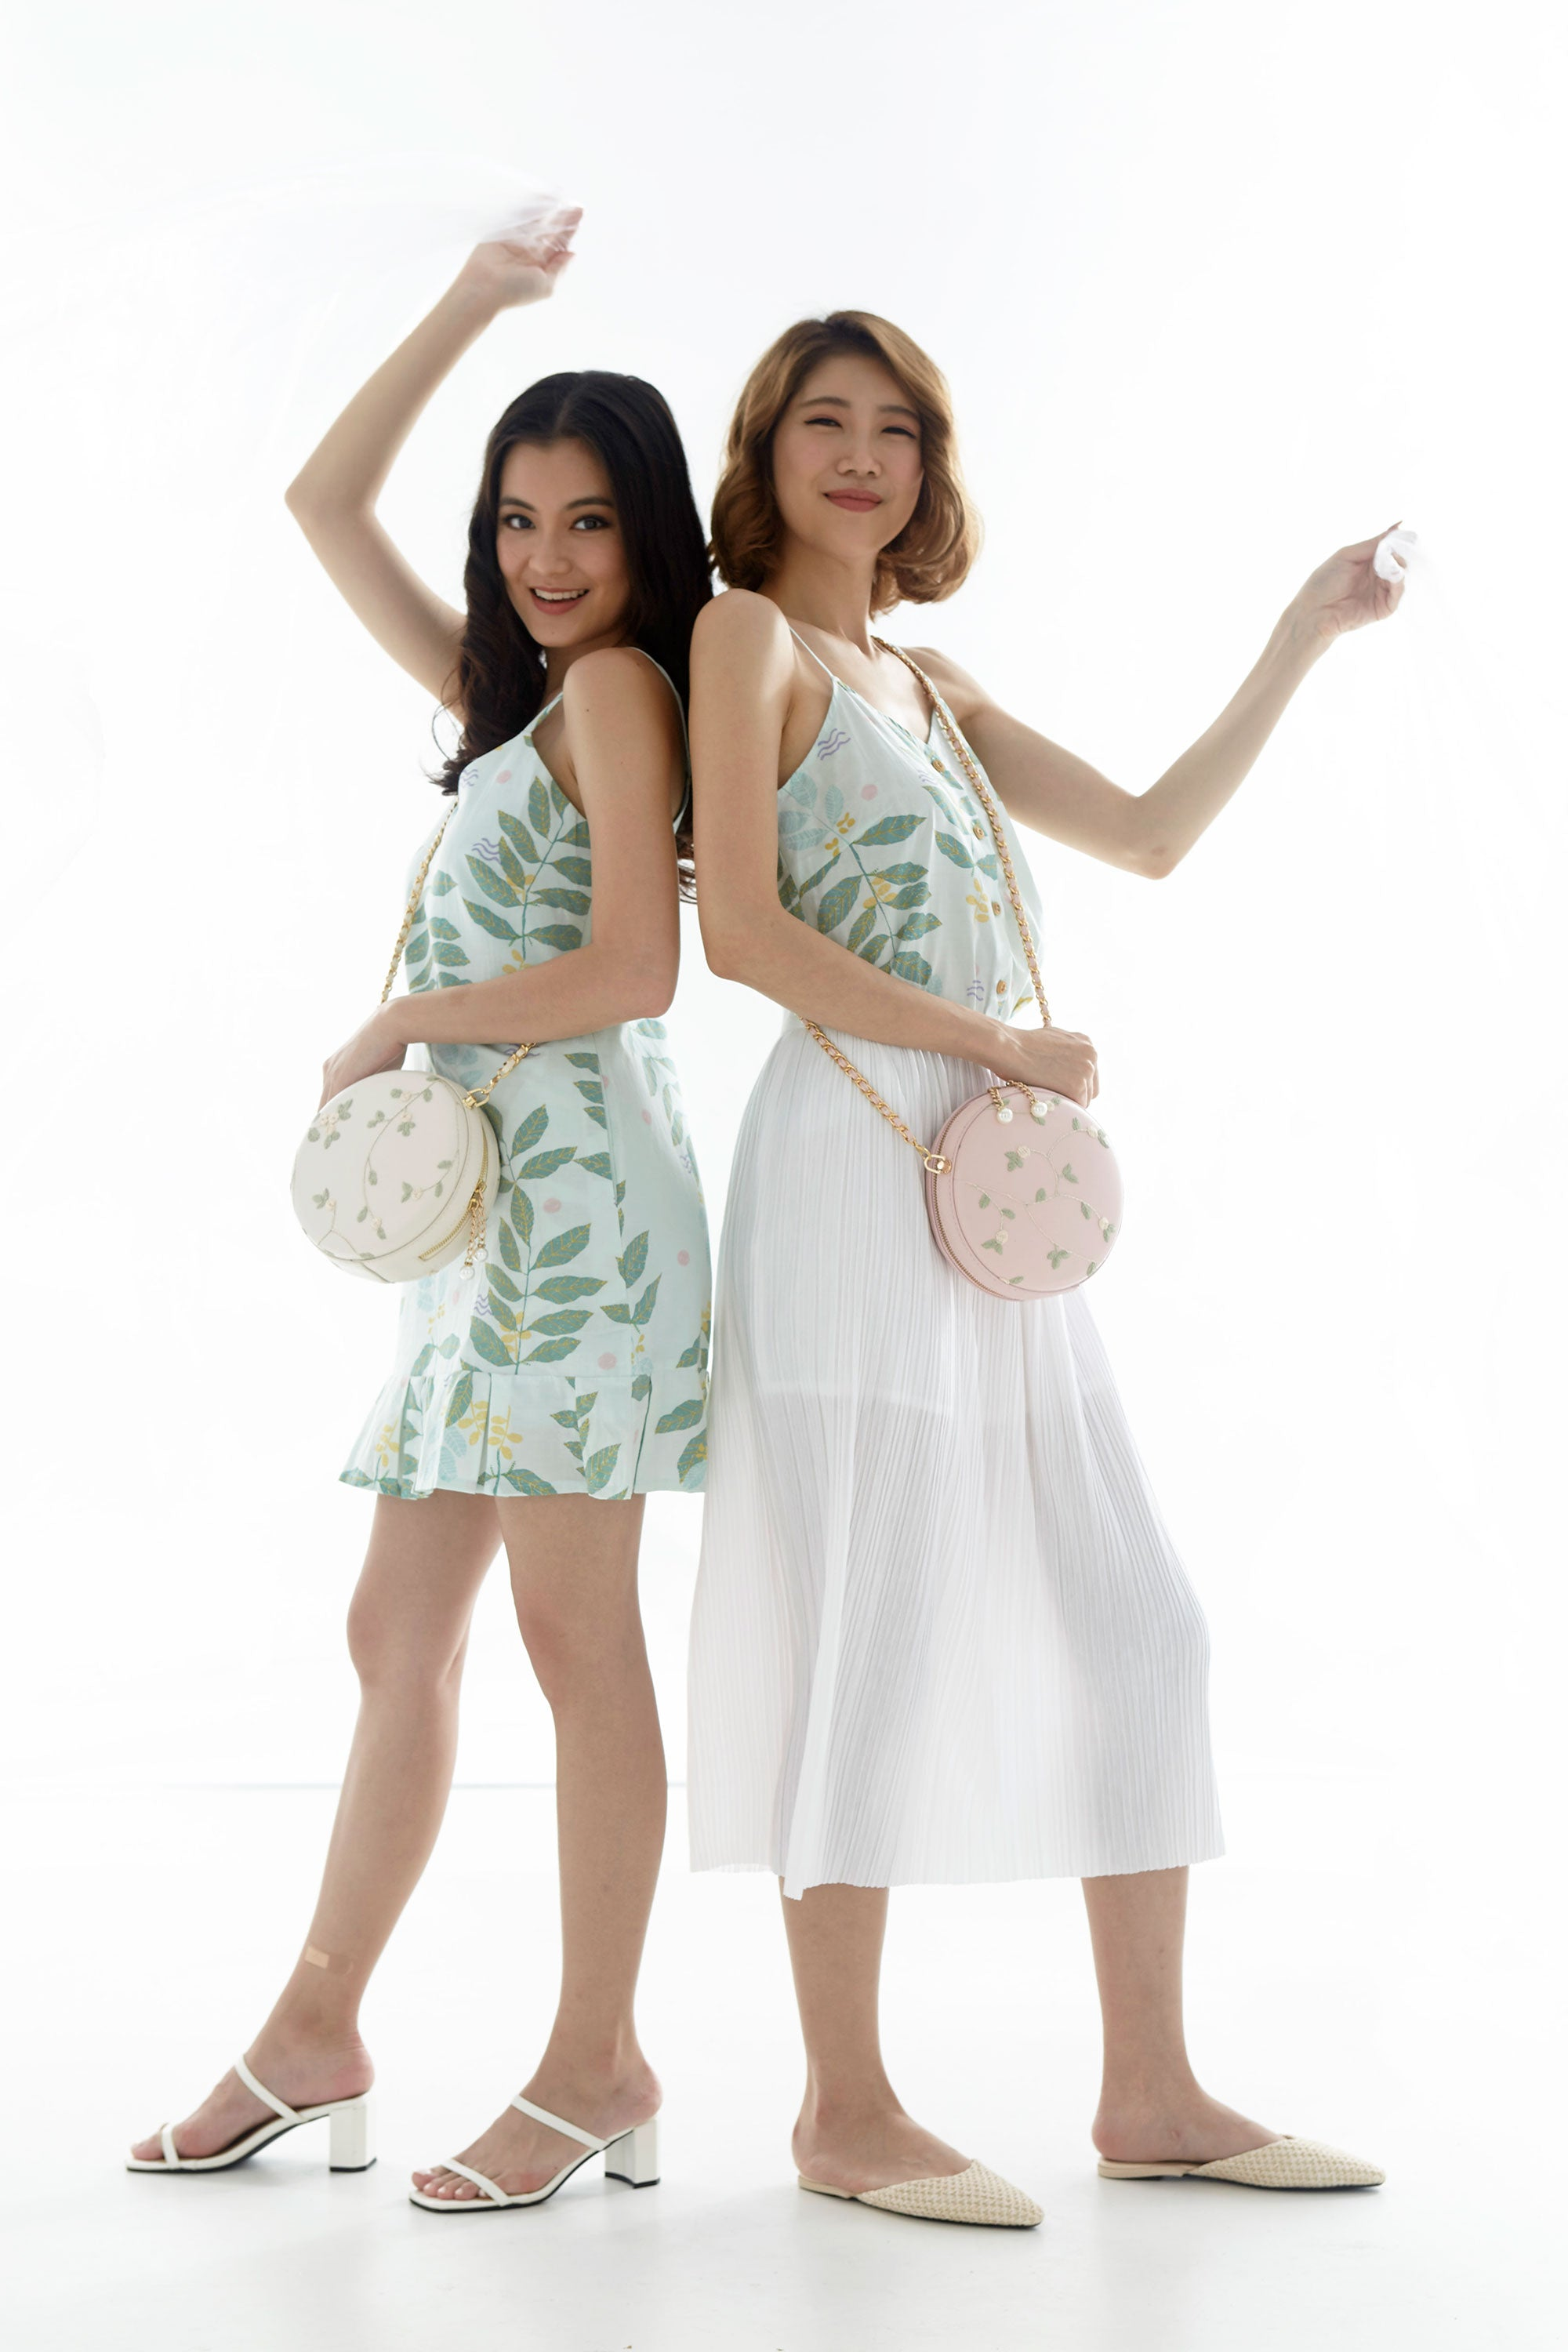 Sujin Floral Macaron Bag (Available in Pink, White and Sage)